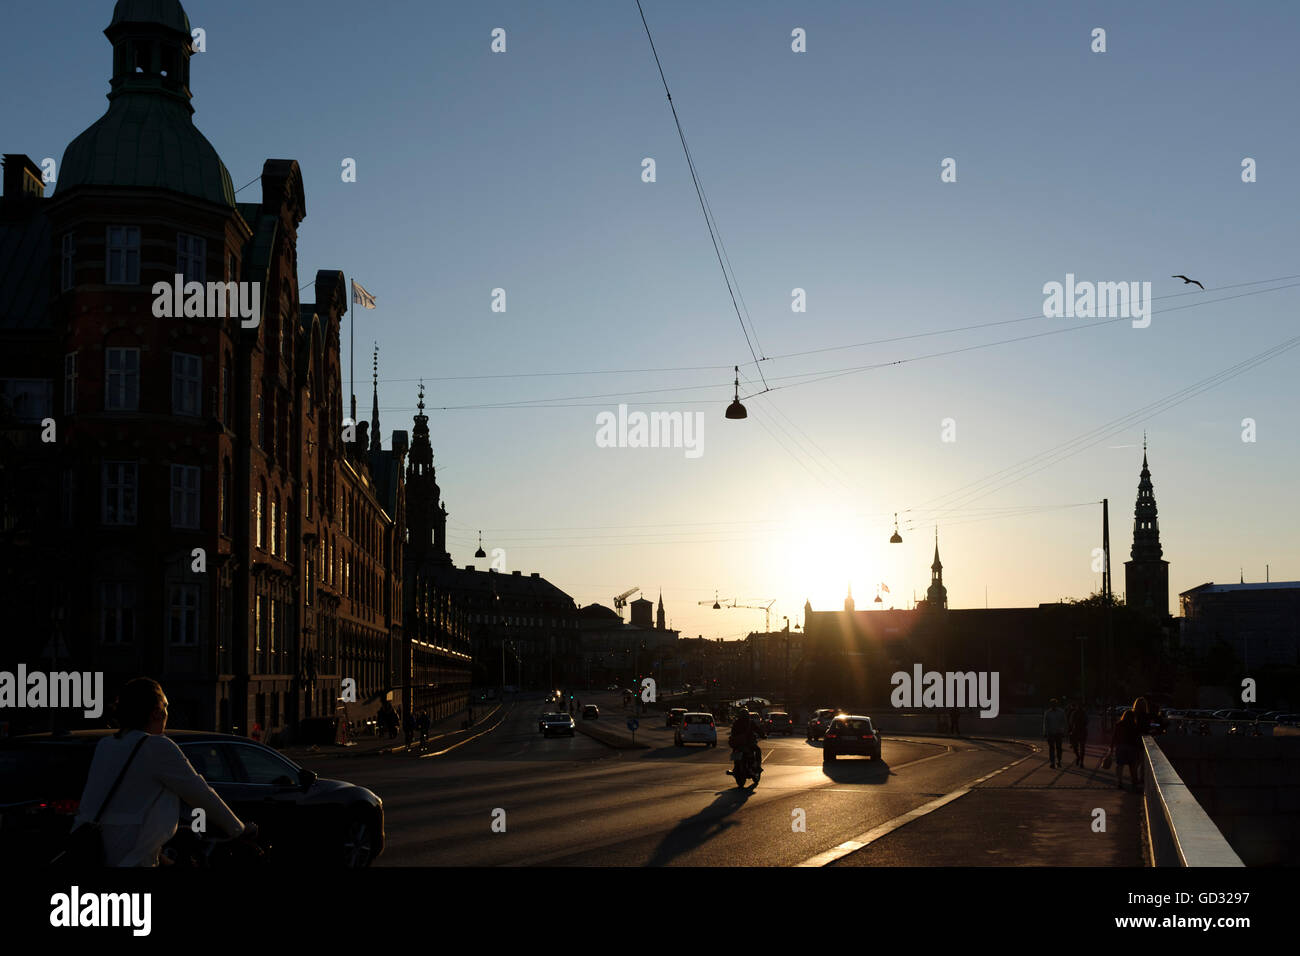 Looking towards Borsen the former stock exchange in Copenhagen Denmark with the setting sun and silhouetted buildings - Stock Image